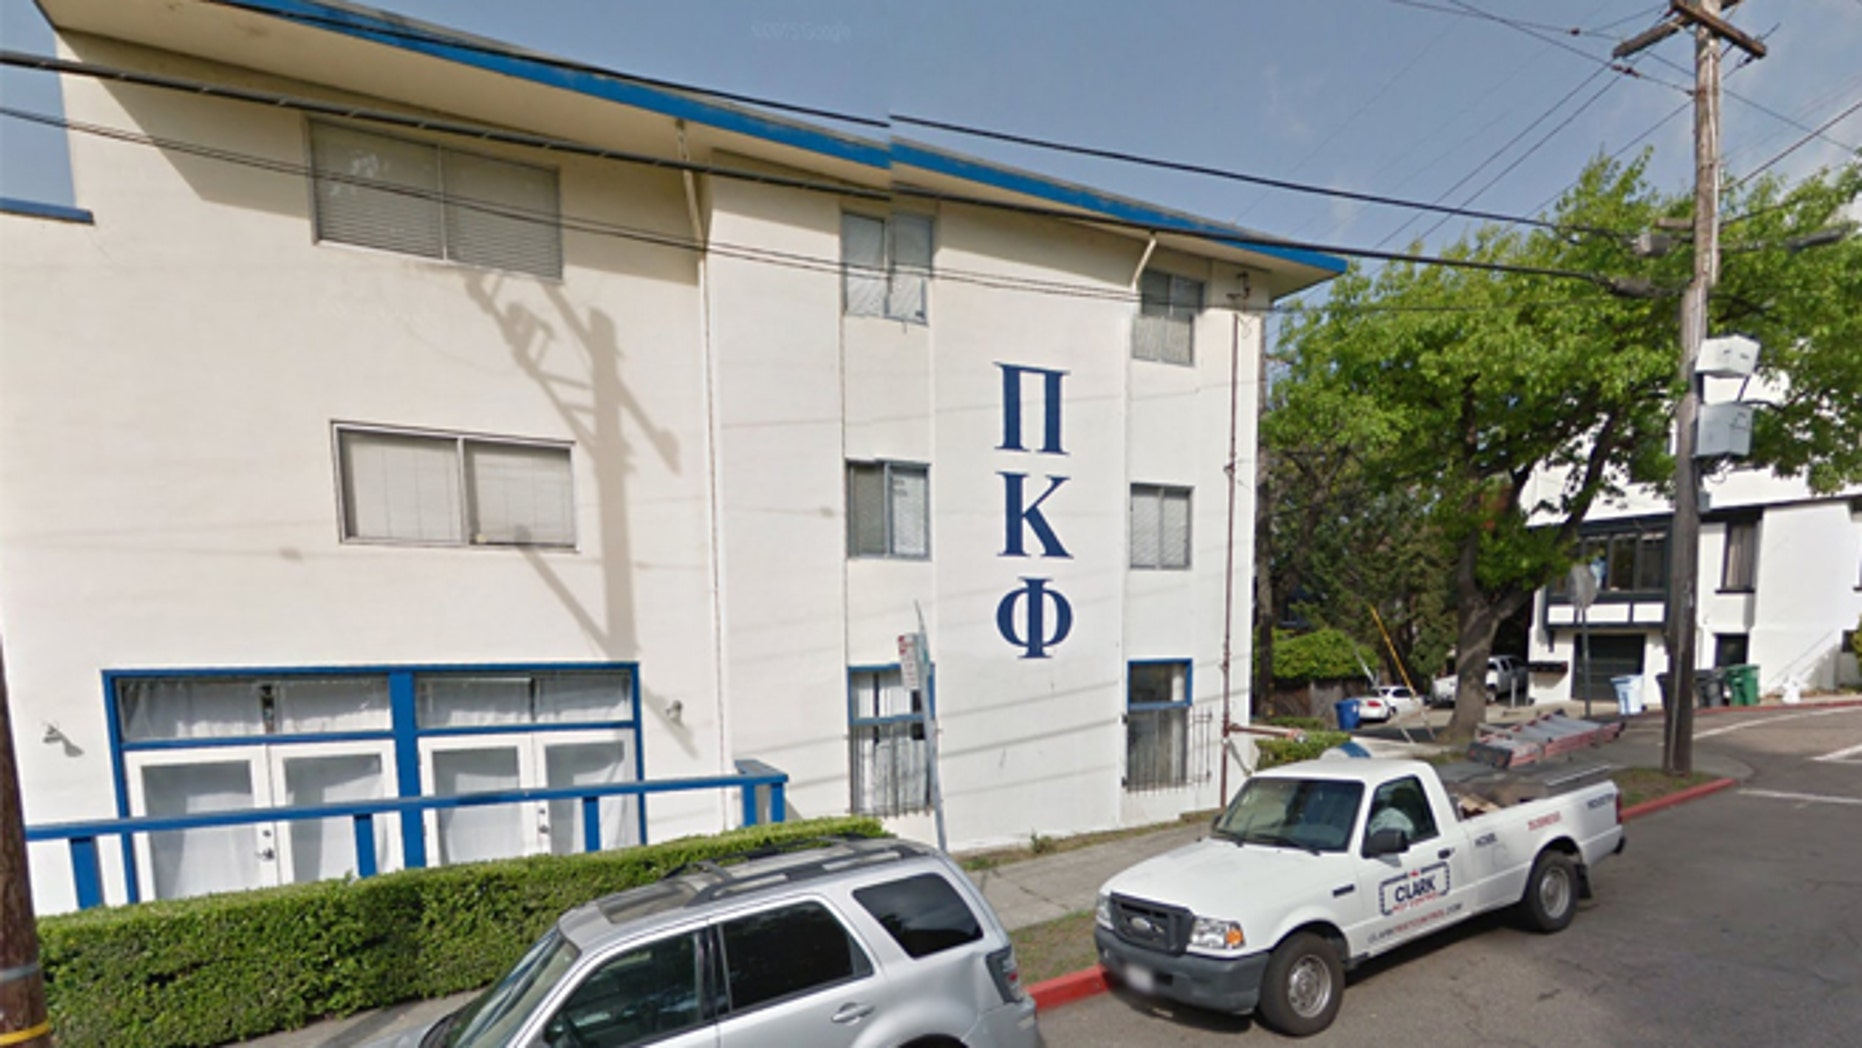 A UC Berkeley student was found dead at the Pi Kappa Phi fraternity house.